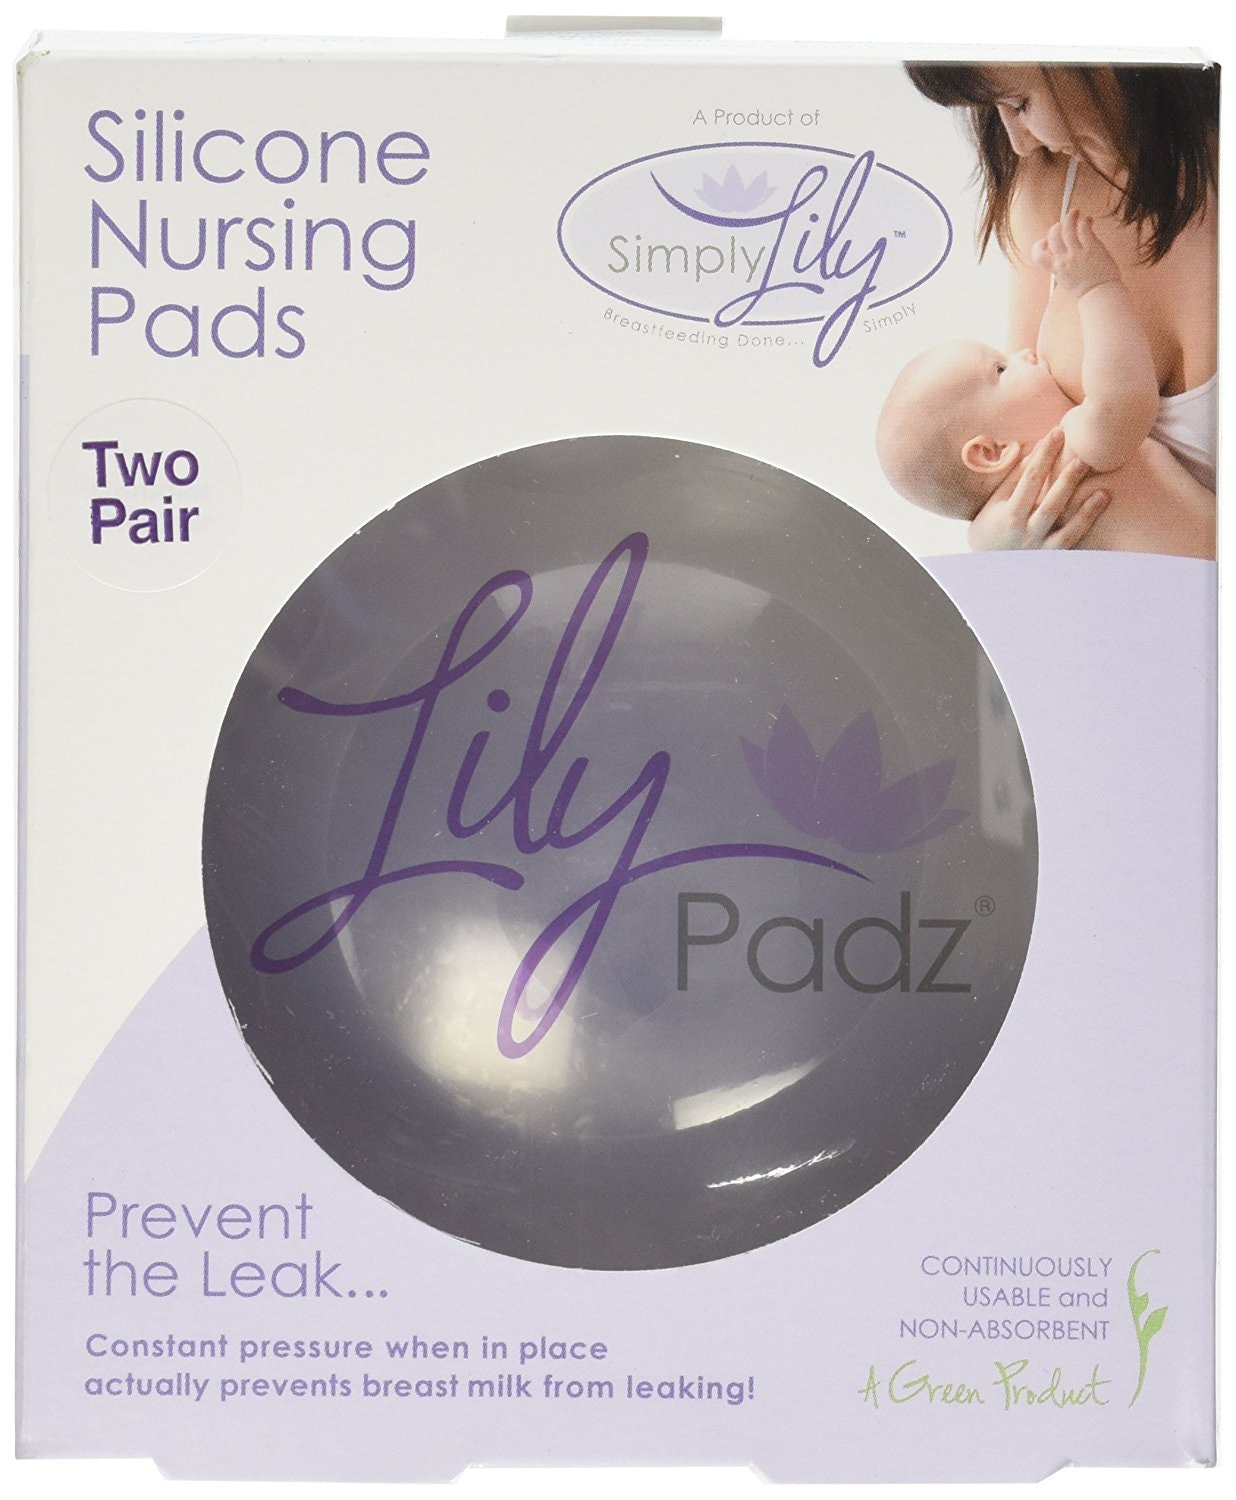 c45acb740f0 The 10 Best Nursing Pads